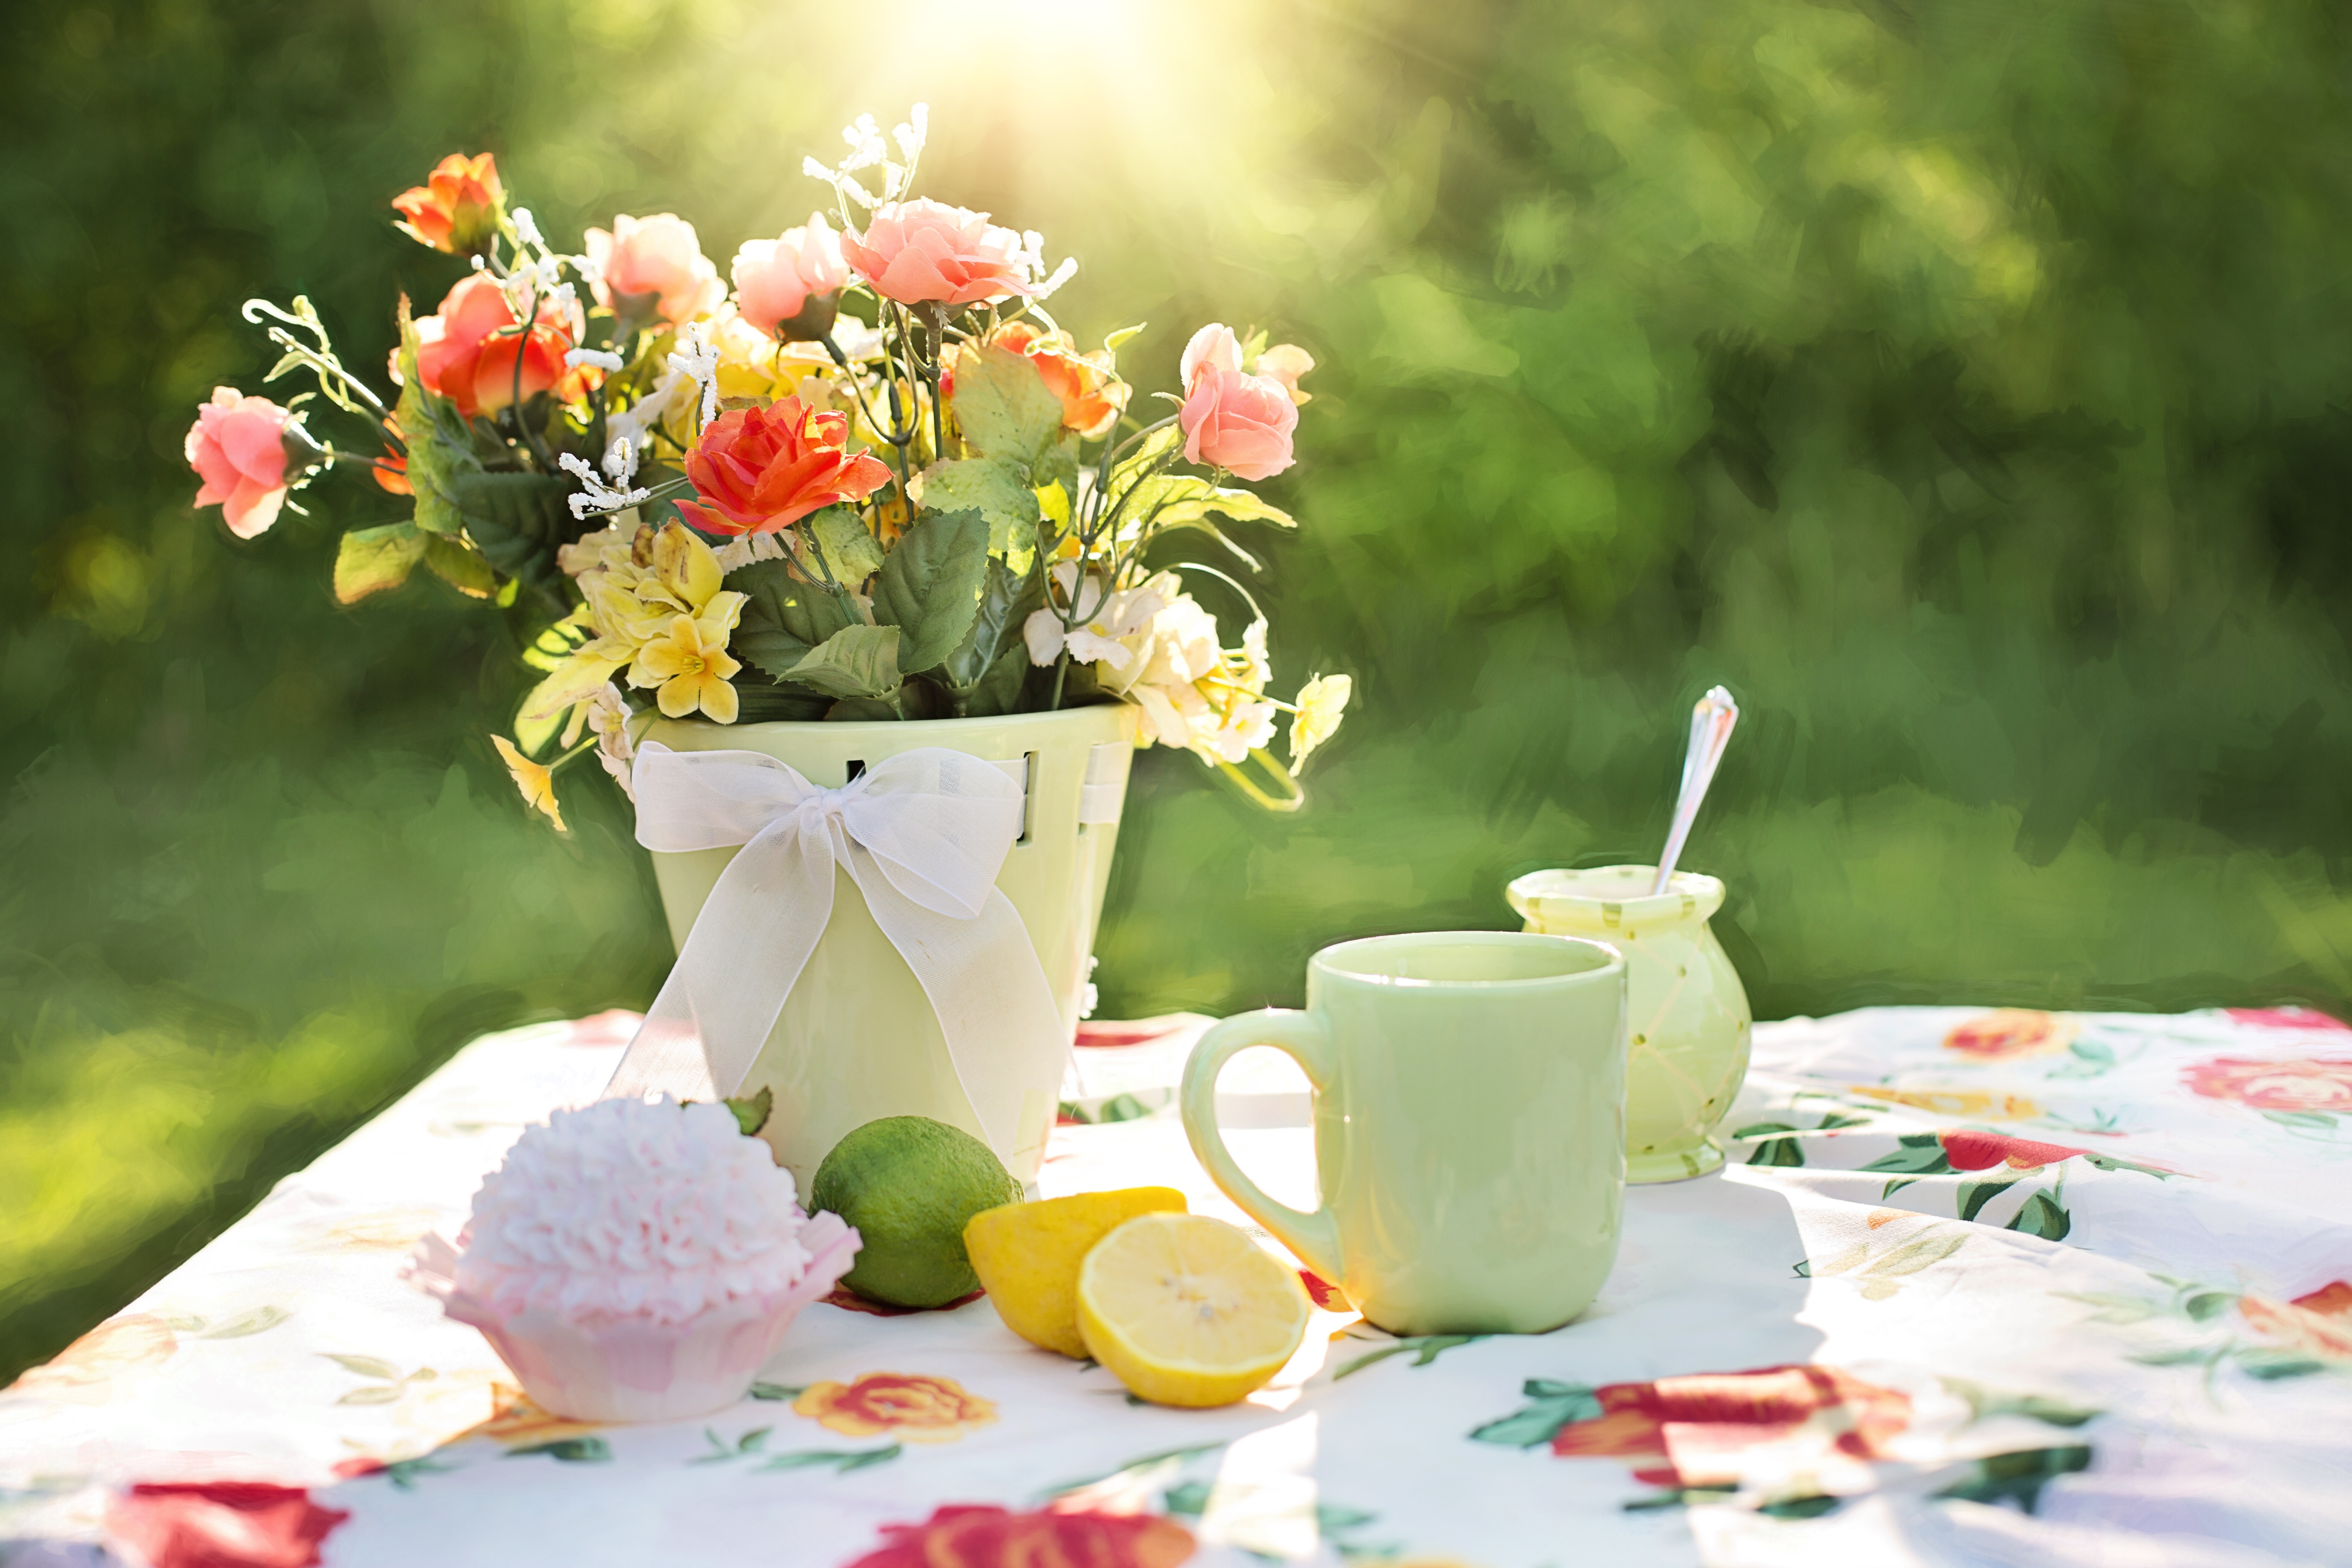 138077 download wallpaper Flowers, Food, Tablewares, Lime, Vase screensavers and pictures for free